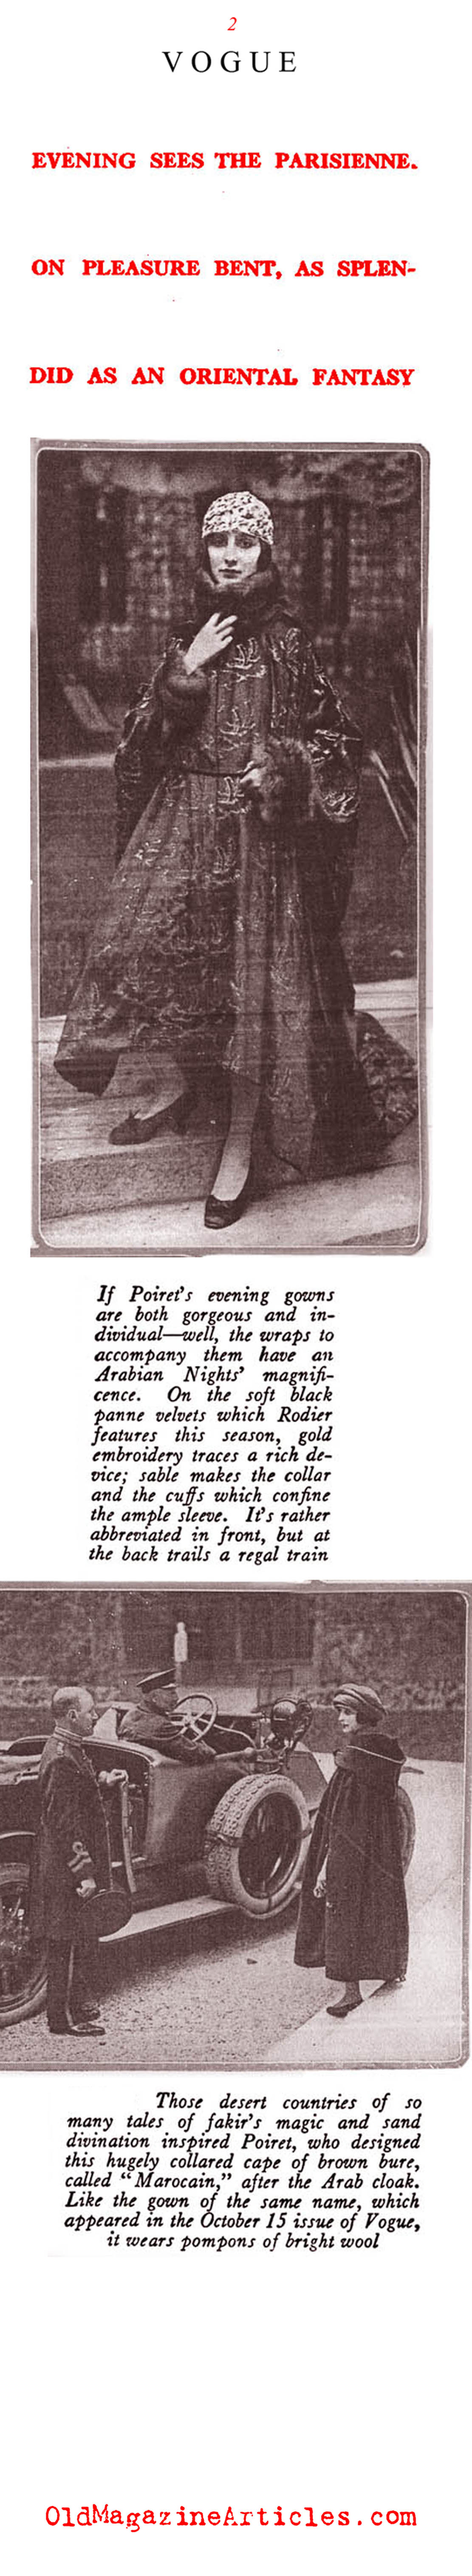 Poiret Wraps and Coats (Vogue Magazine, 1919)